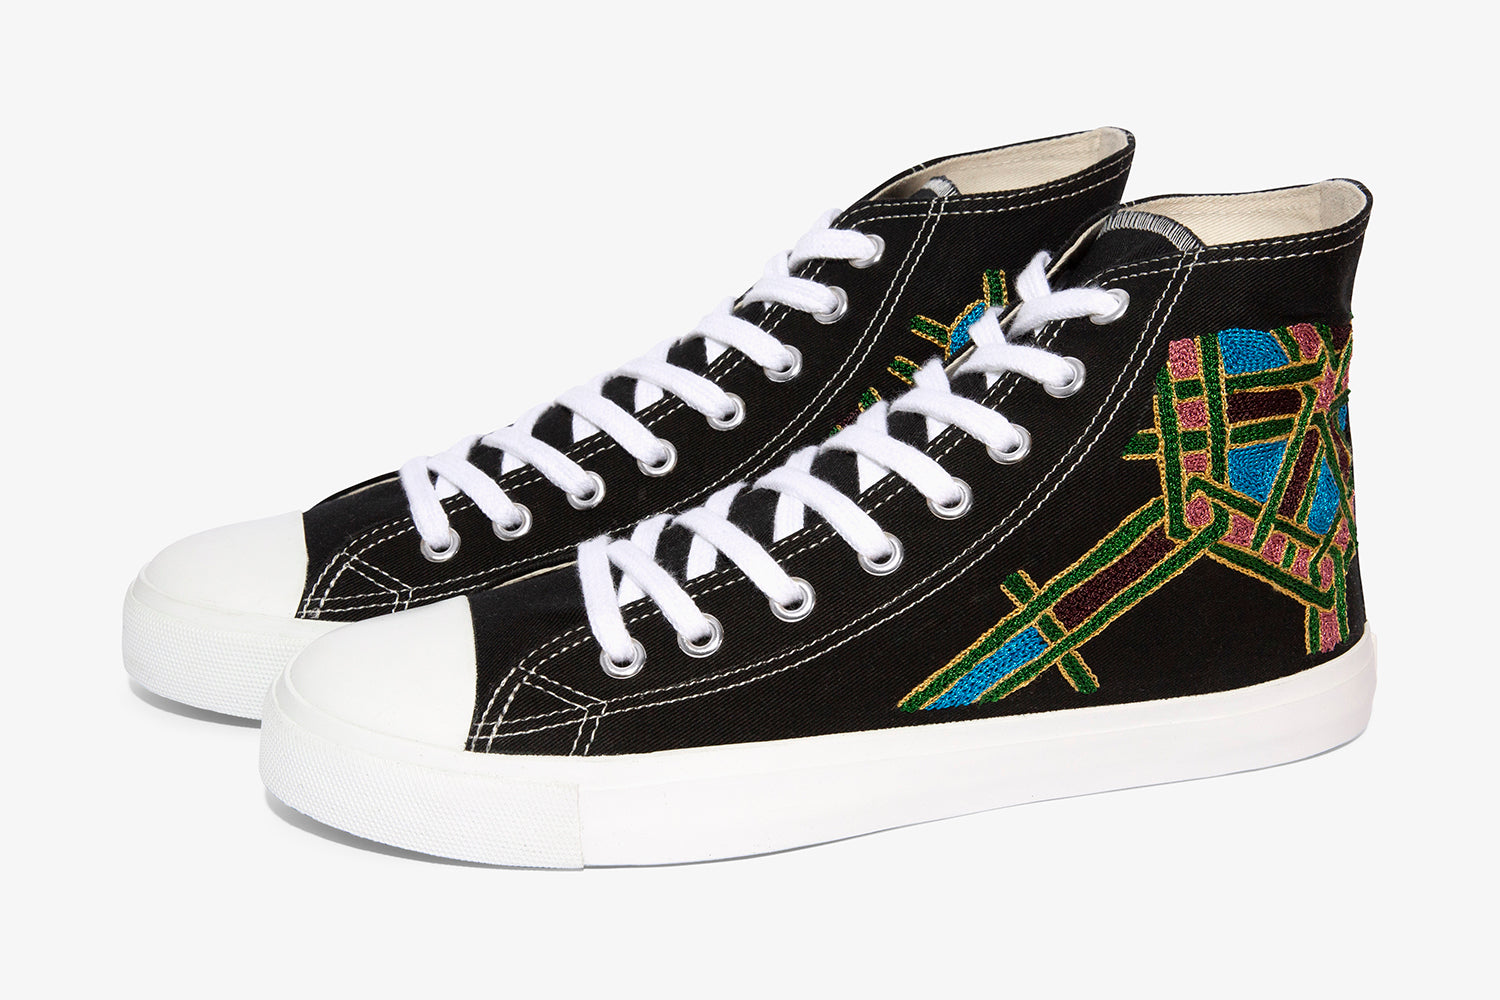 high top sneakers for men with hand embroidery